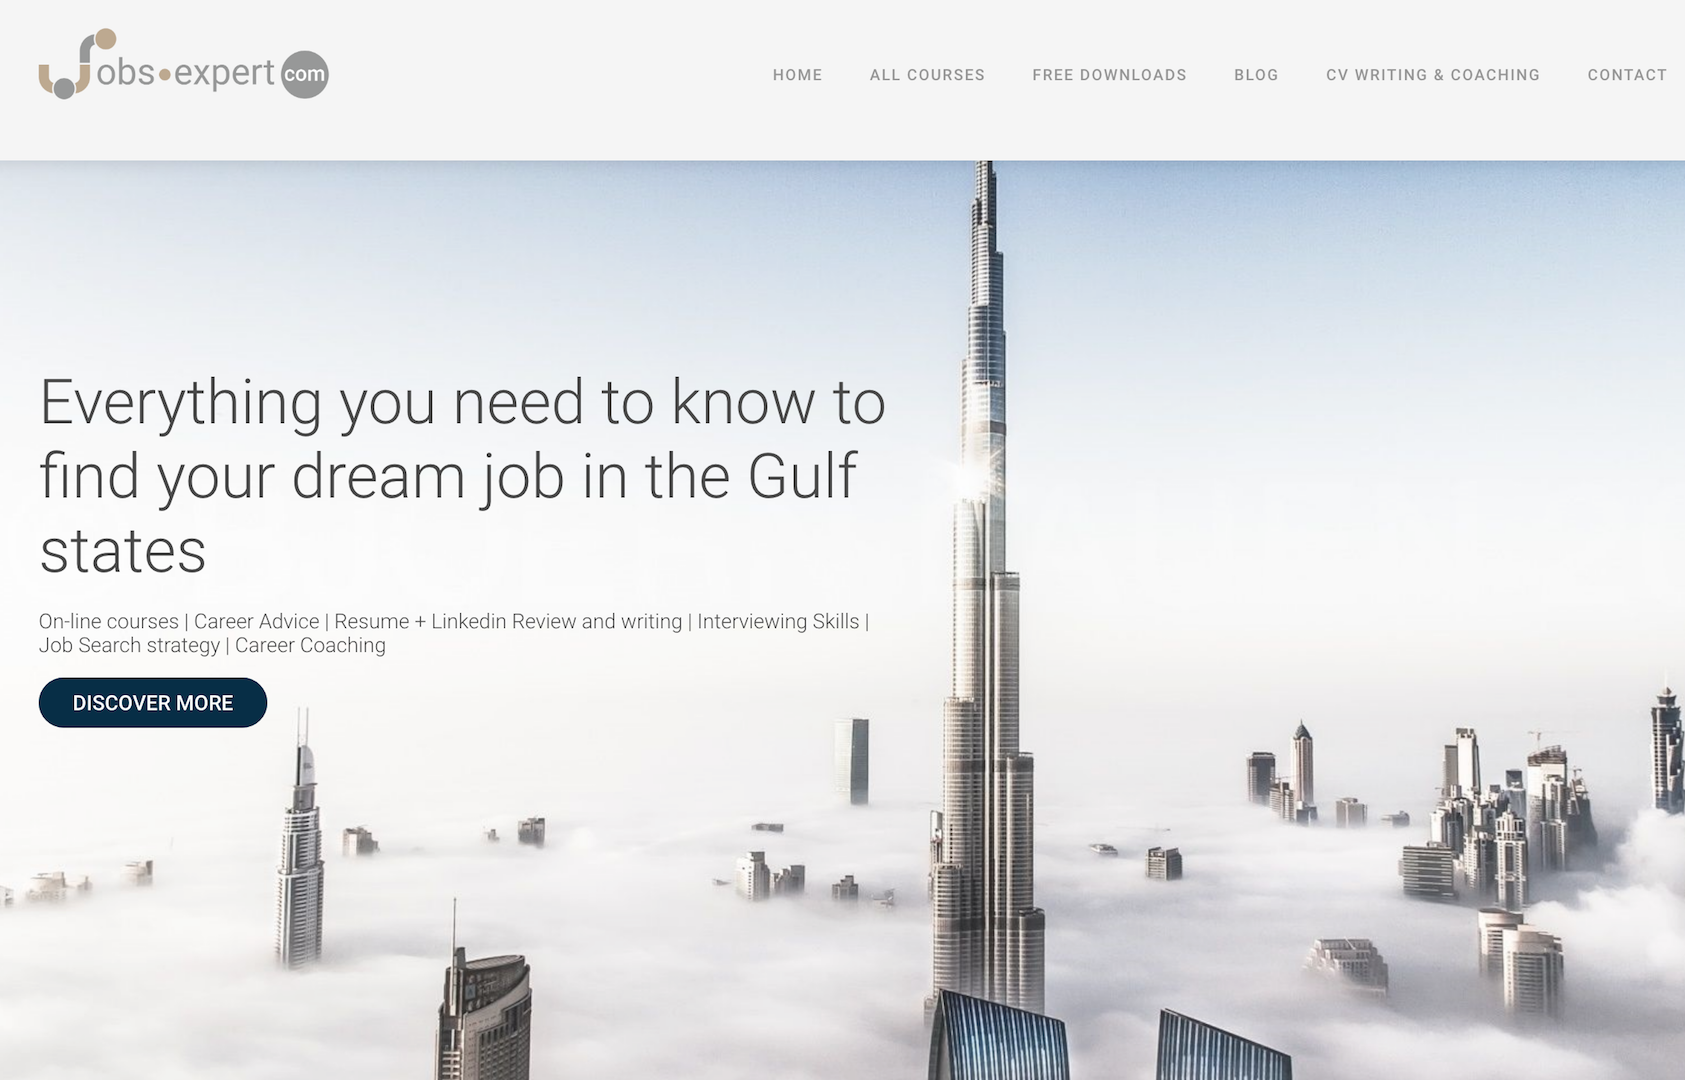 Jobs-Expert com Offers Free Online Course for UAE Job Seekers